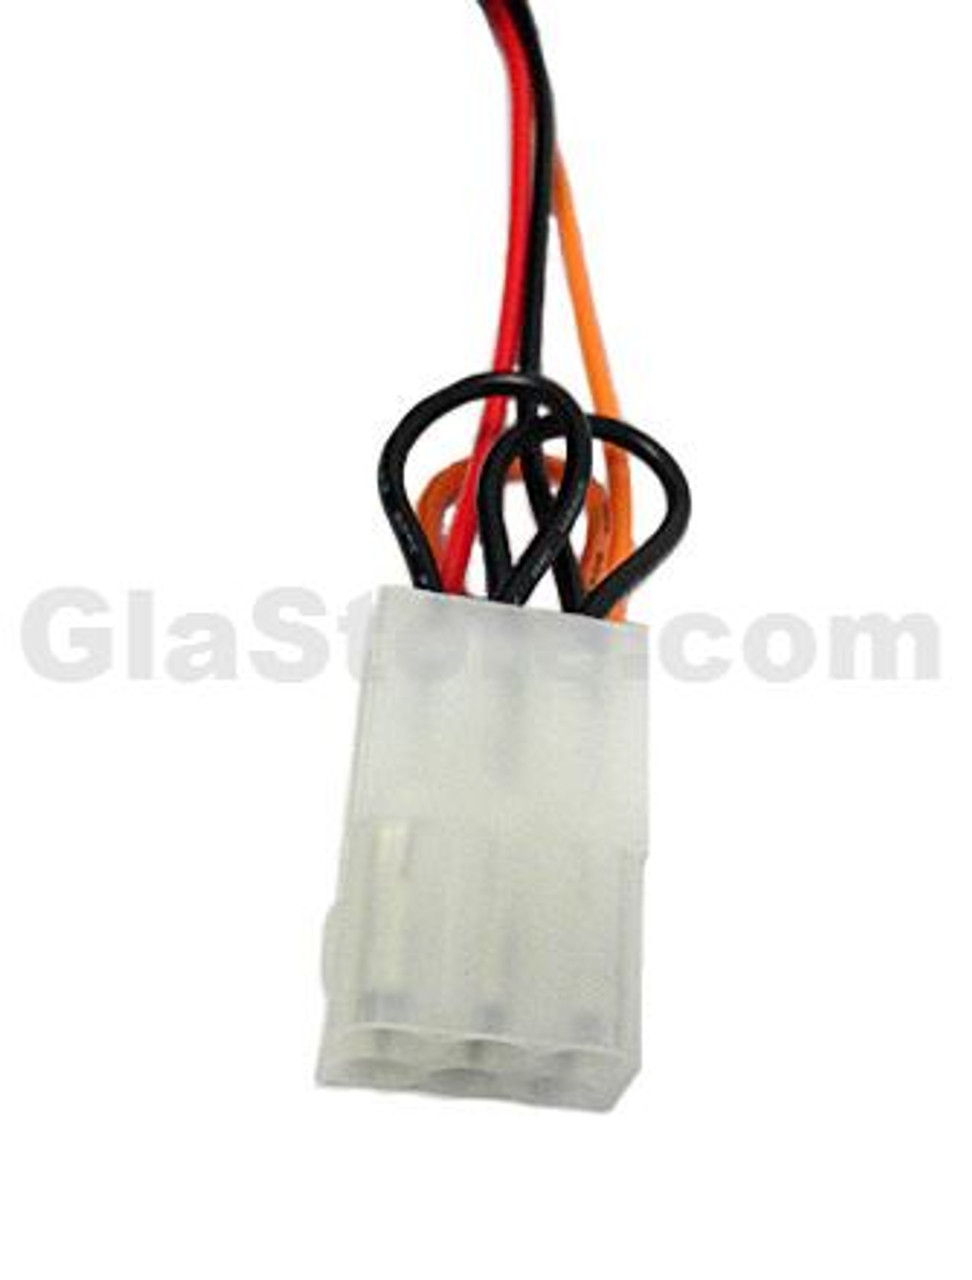 wiring harness used for printer standard 8 liner cherry master wiring harness great lakes amusement  8 liner cherry master wiring harness